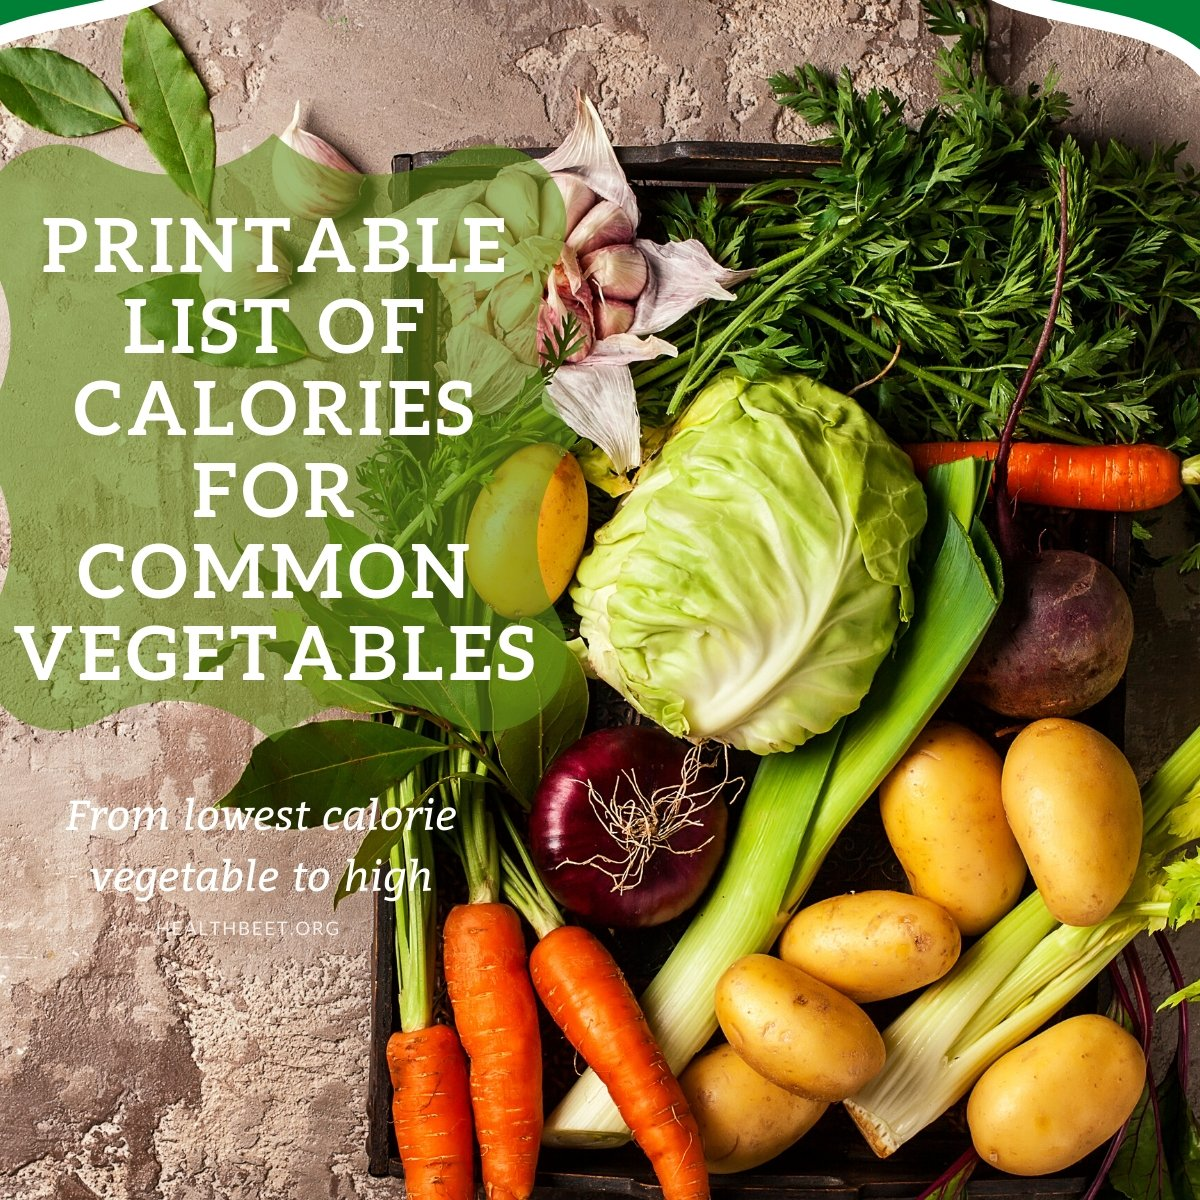 printable list of common veggies and their calories